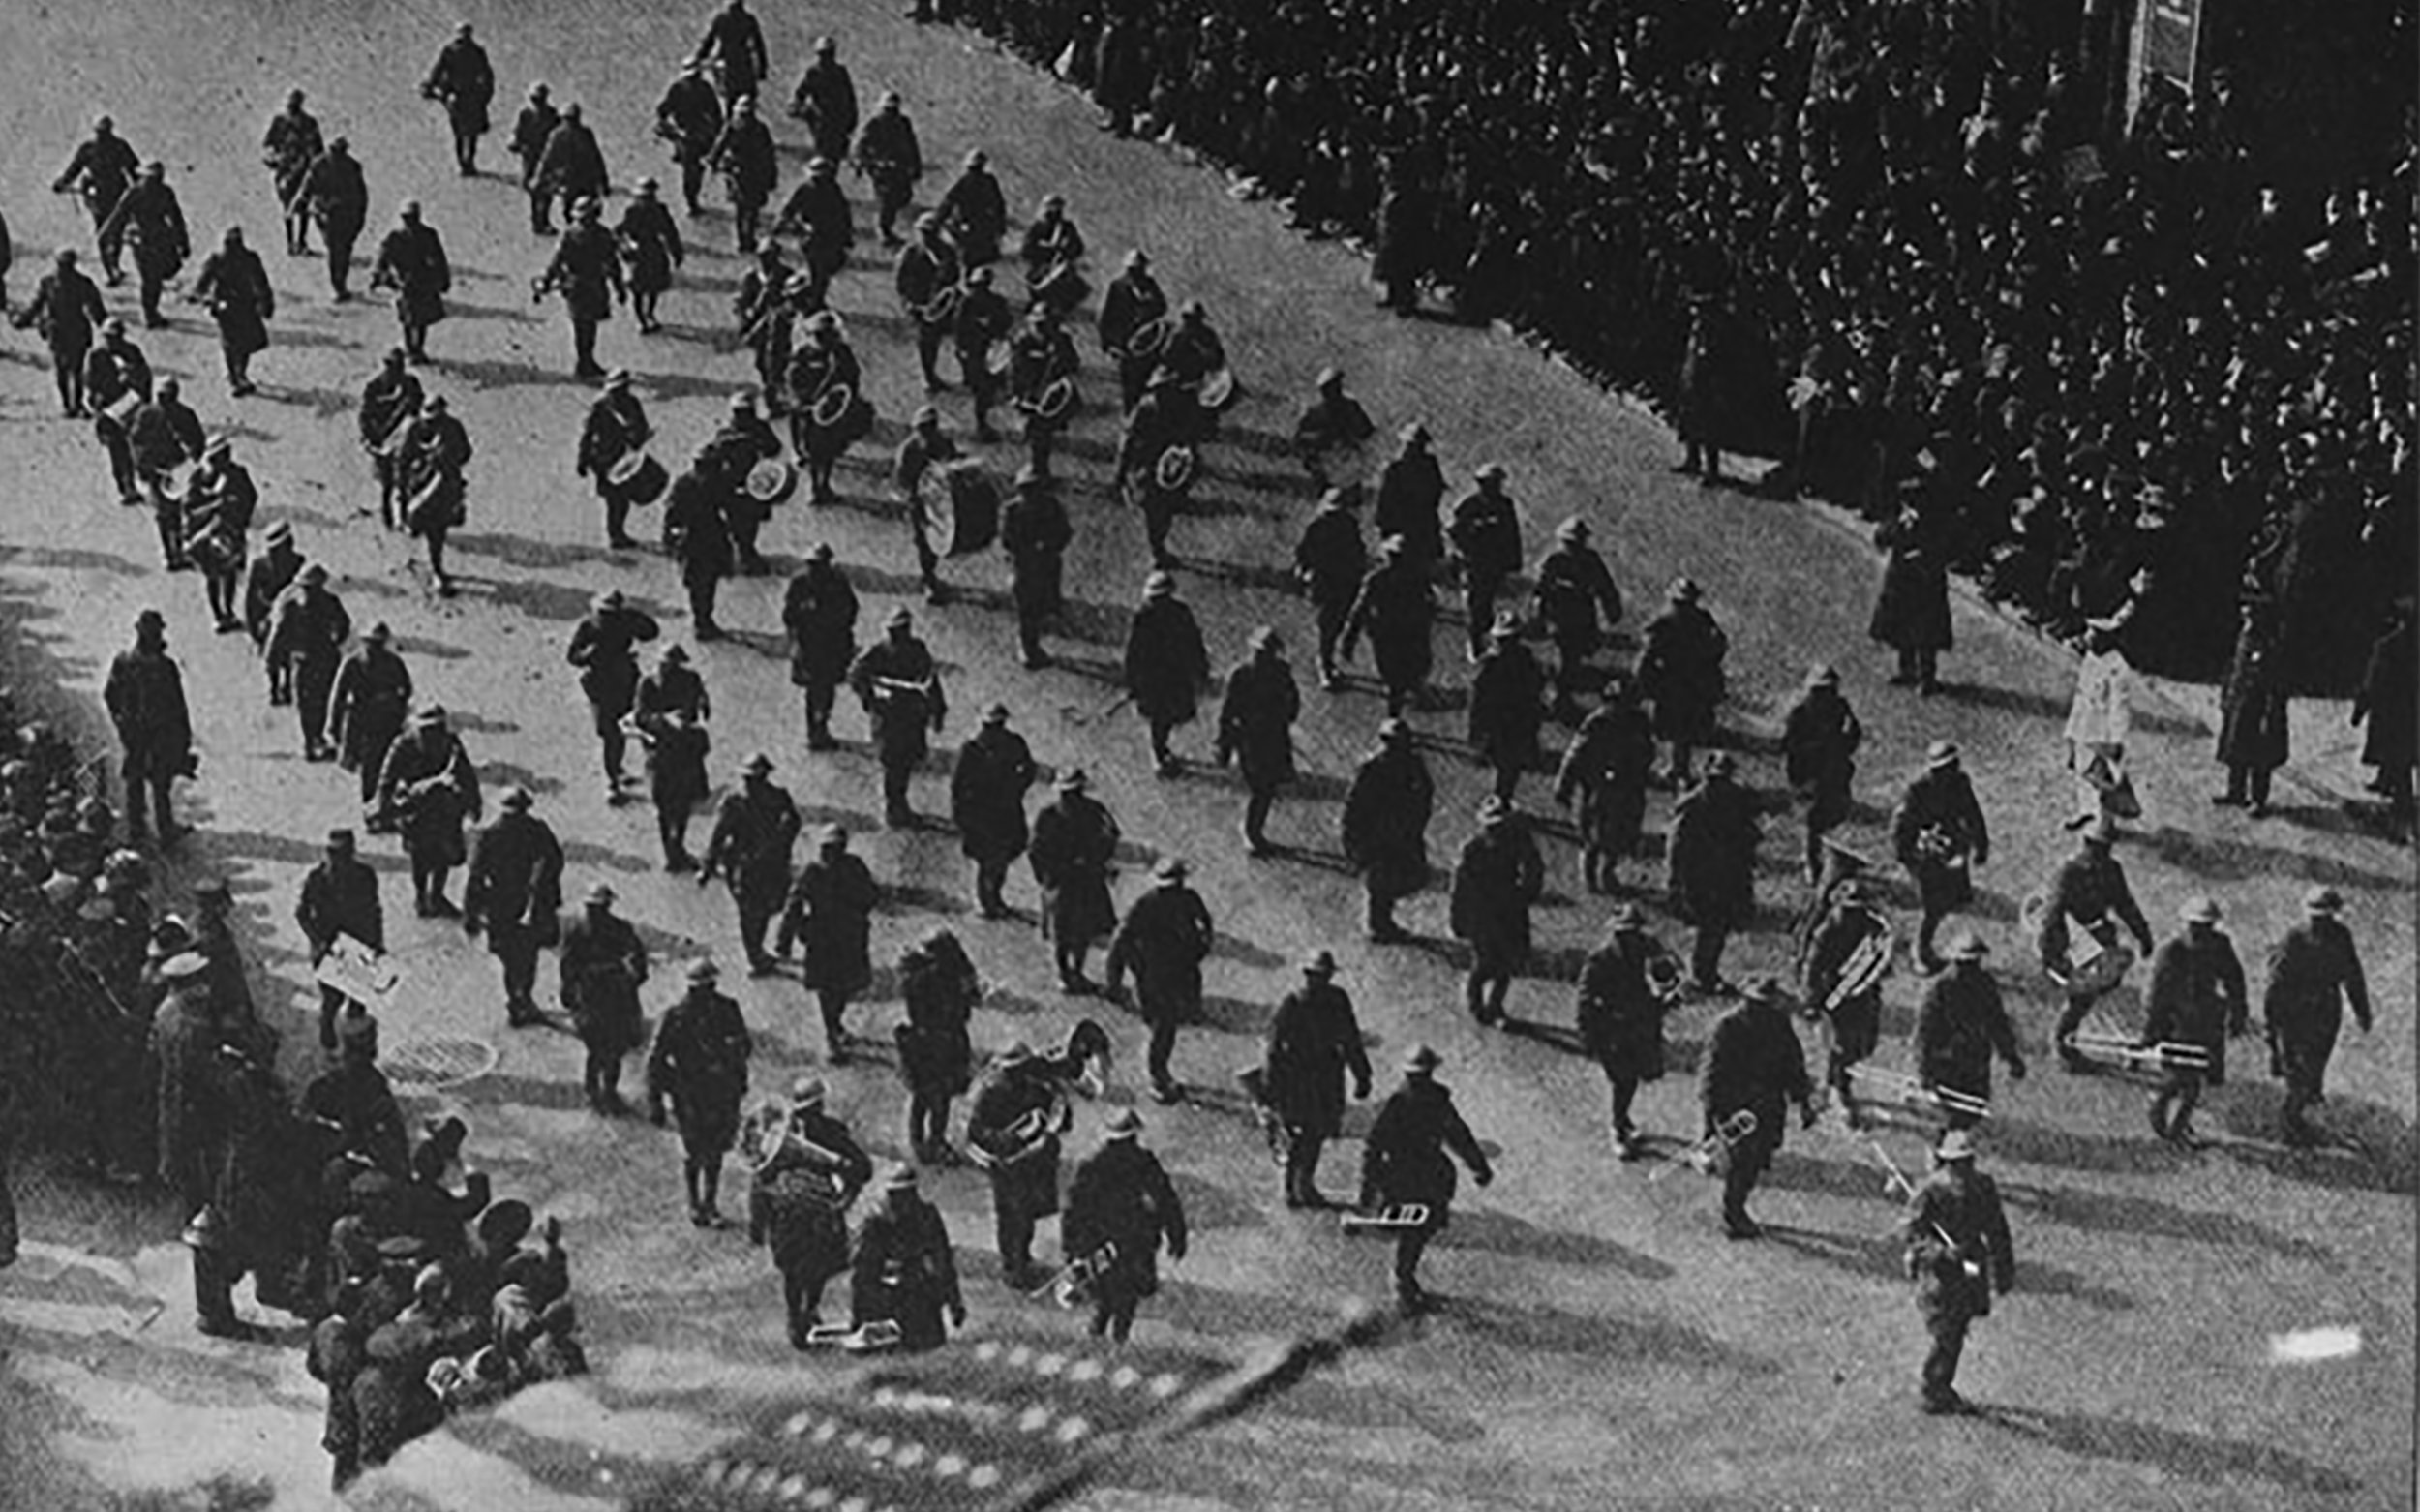 Hellfighters Band Marches in Harlem 1919 Library of Congress